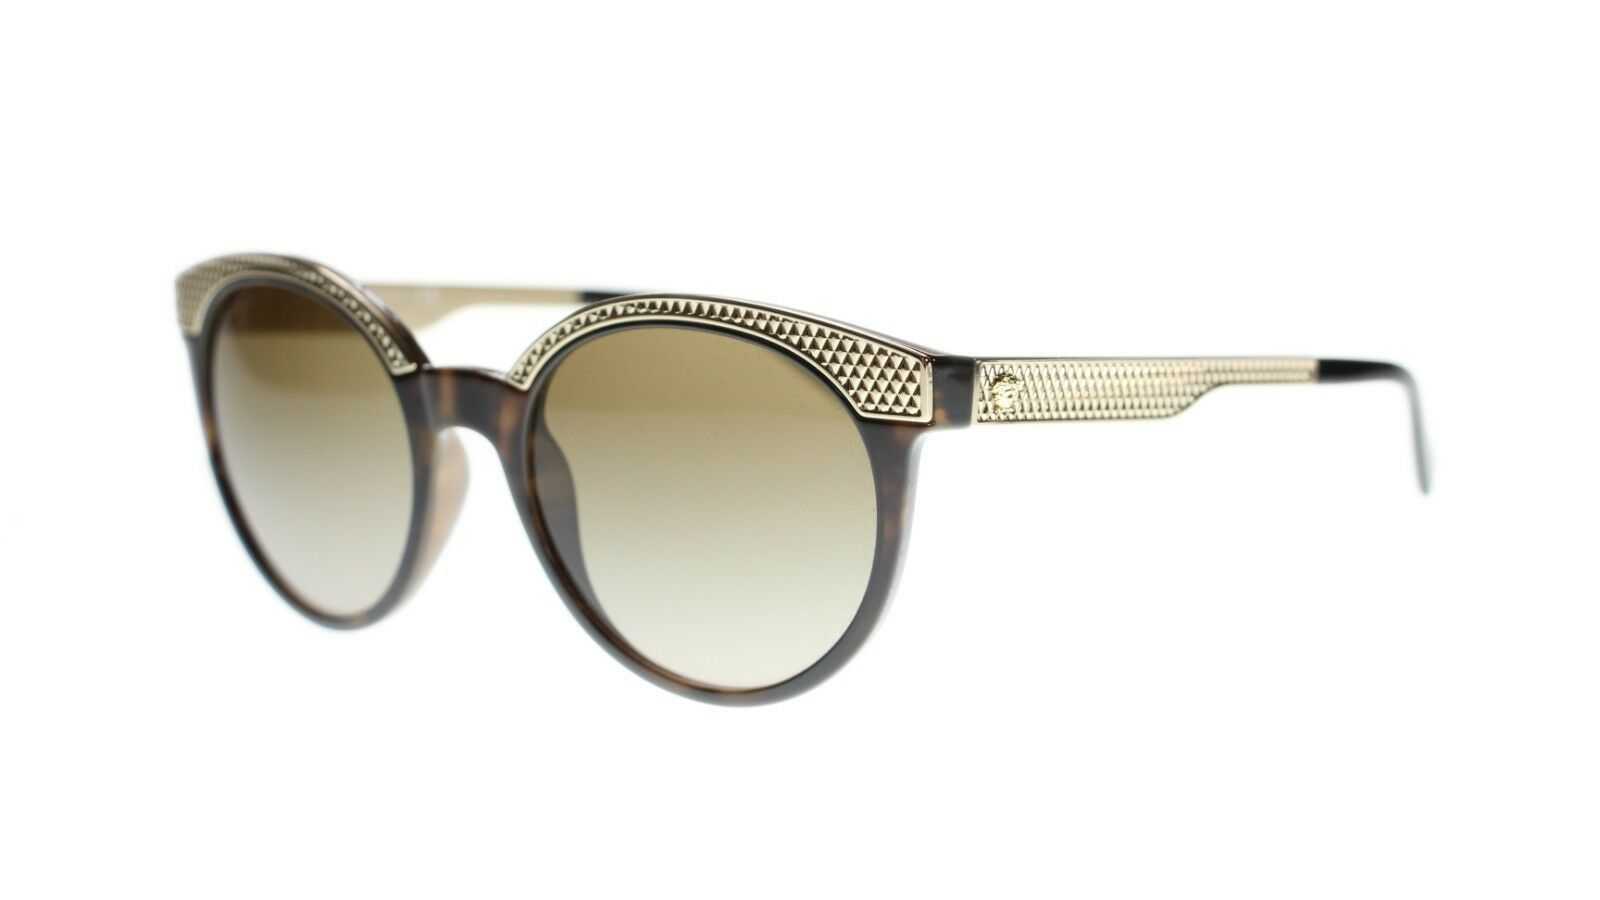 Versace Sunglasses VE4330 988/13 Havana & Gold Brown Gradient 53mm Authentic